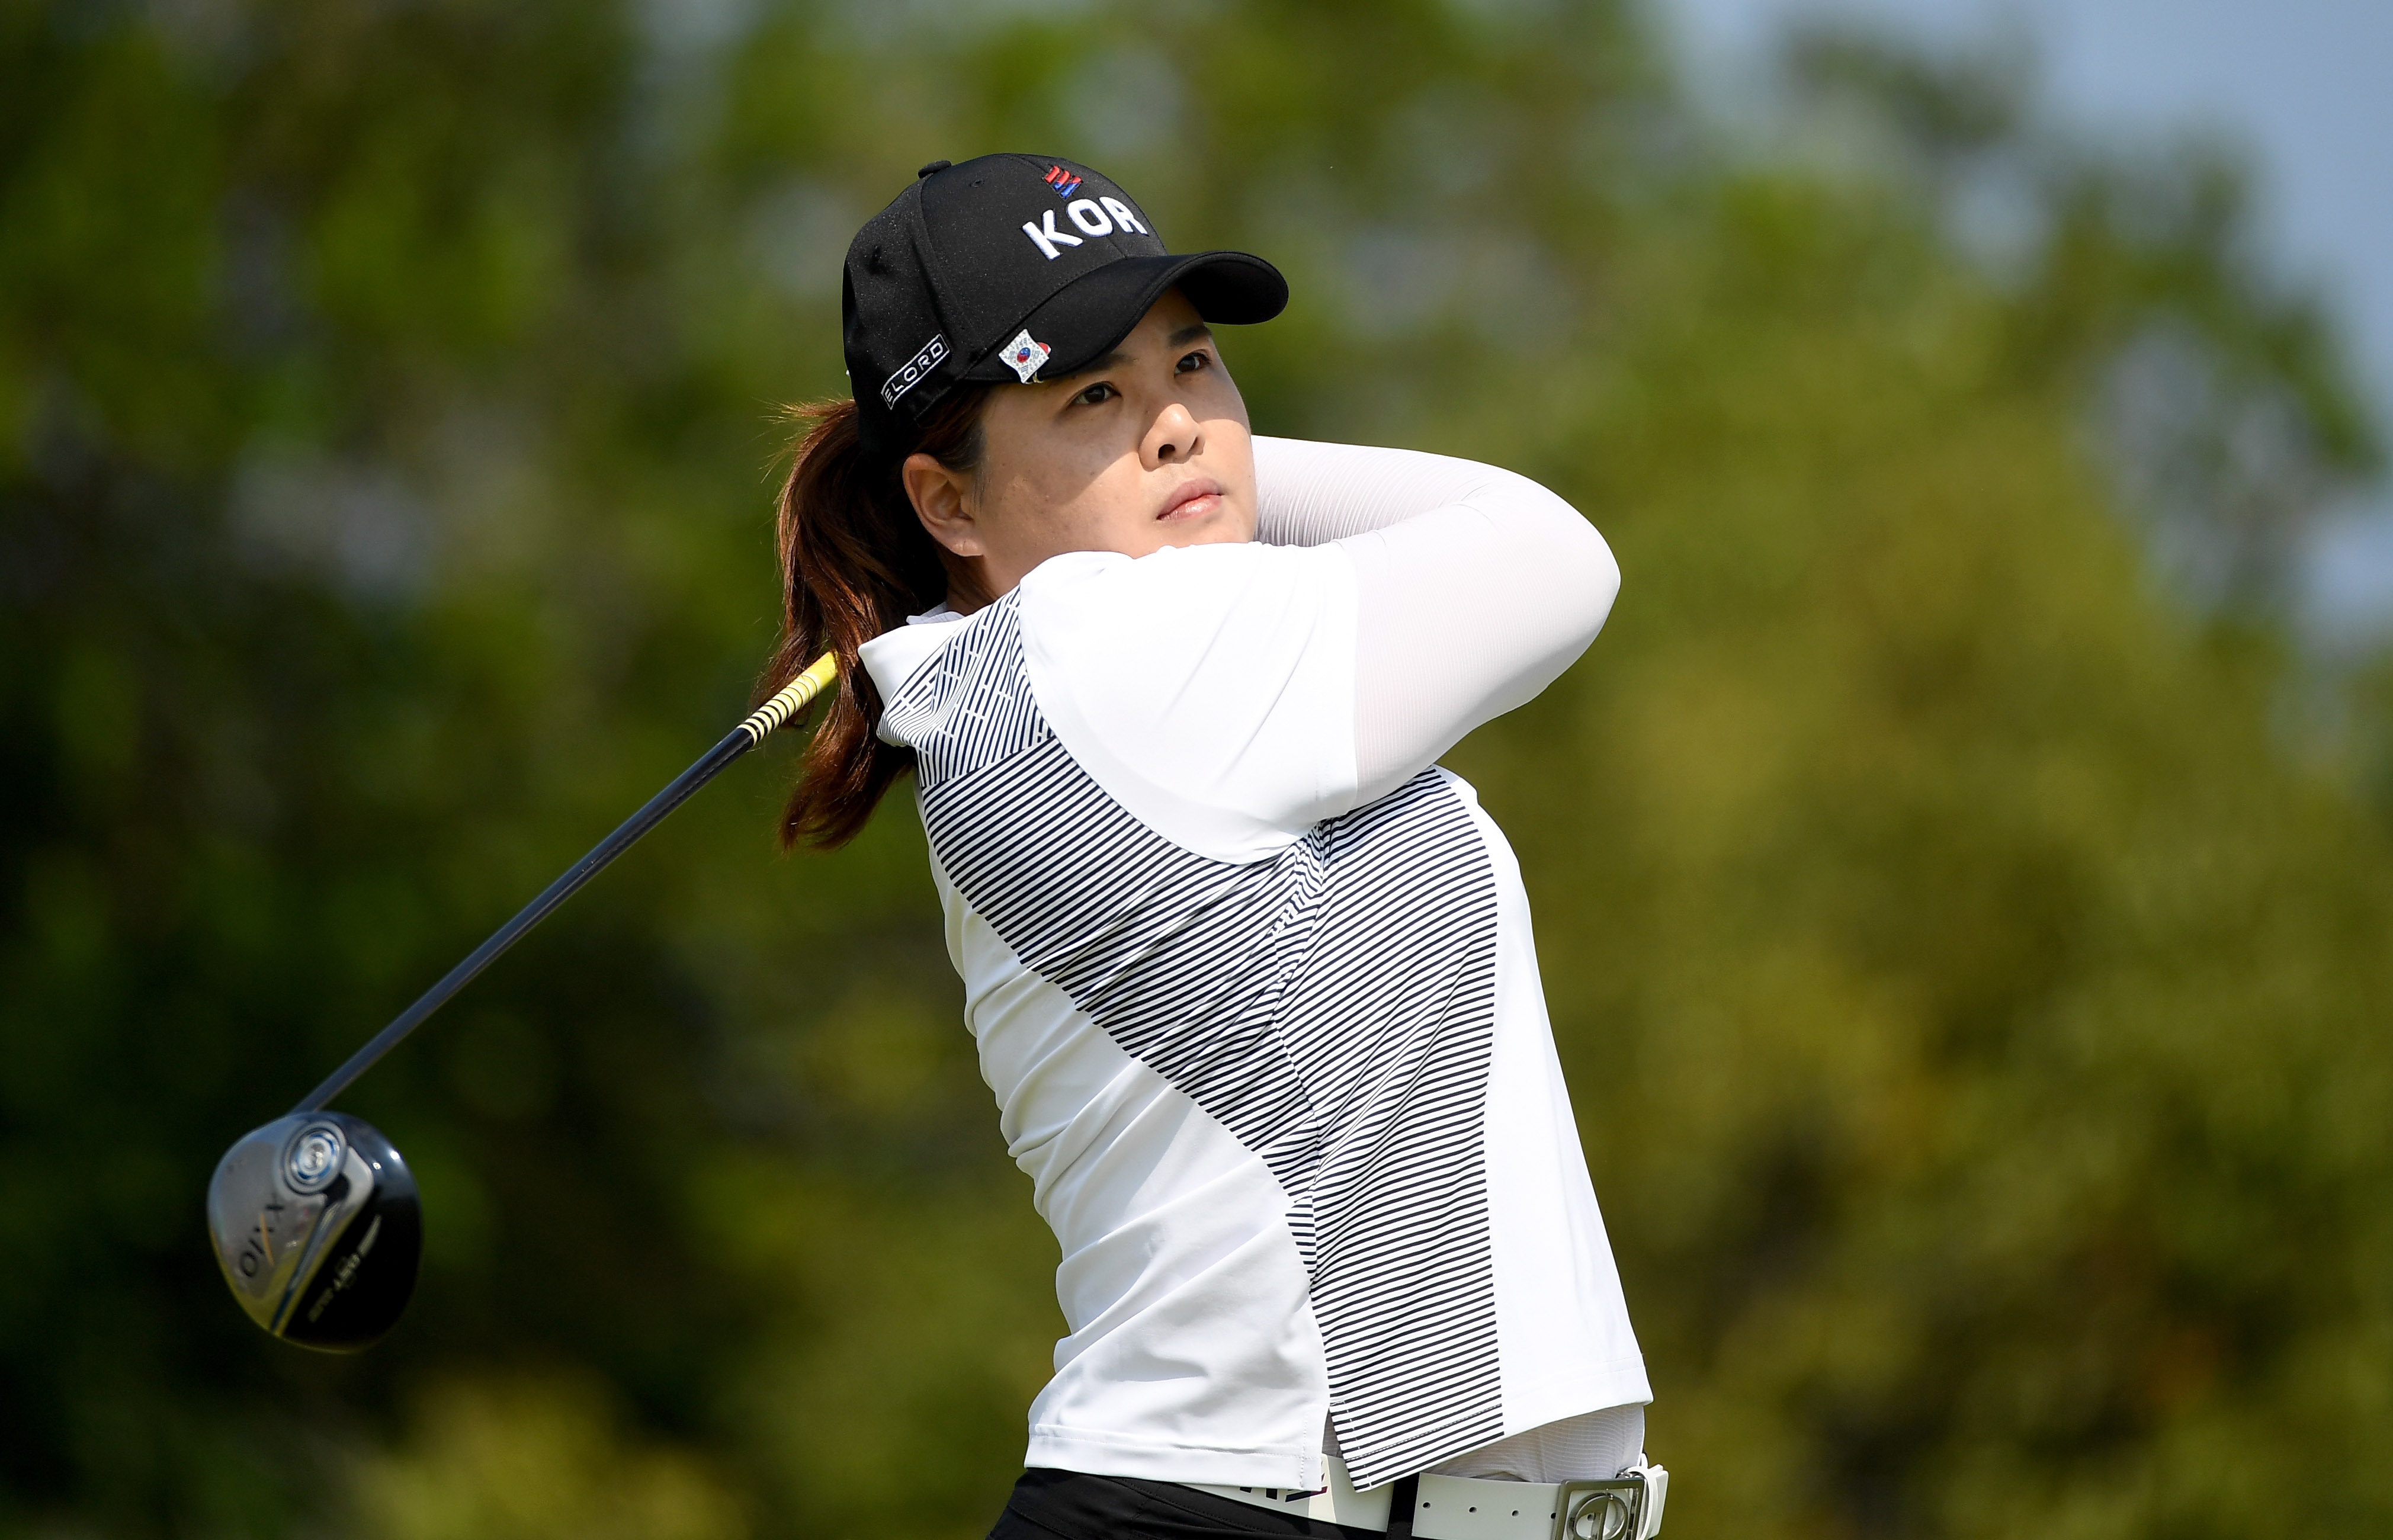 Olympics Womens Golf Results Inbee Park Dominating After Round 3